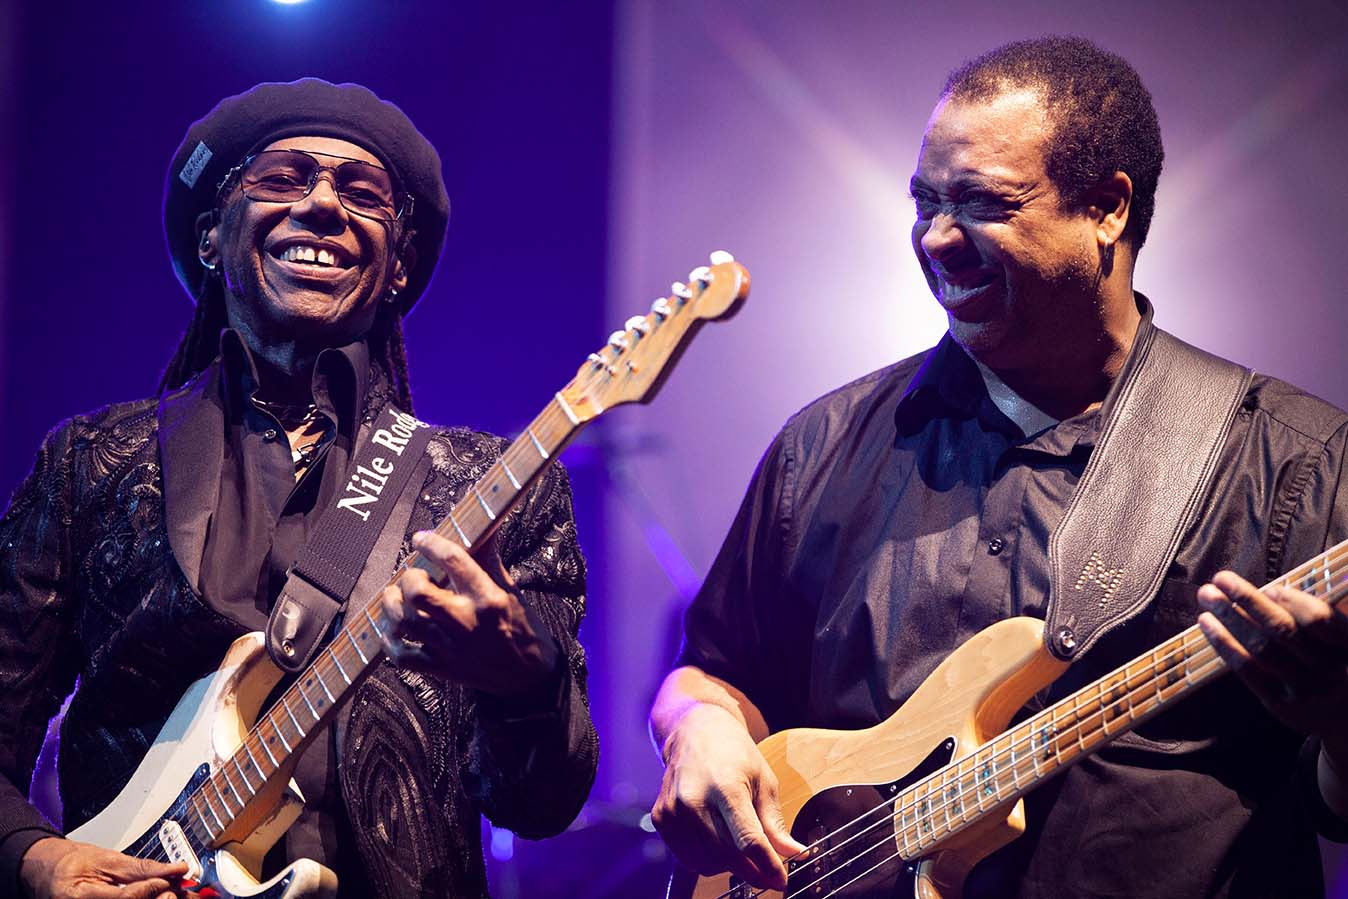 Nile Rodgers and Jerry Bass perform with Chic on stage at the Arena, Manchester